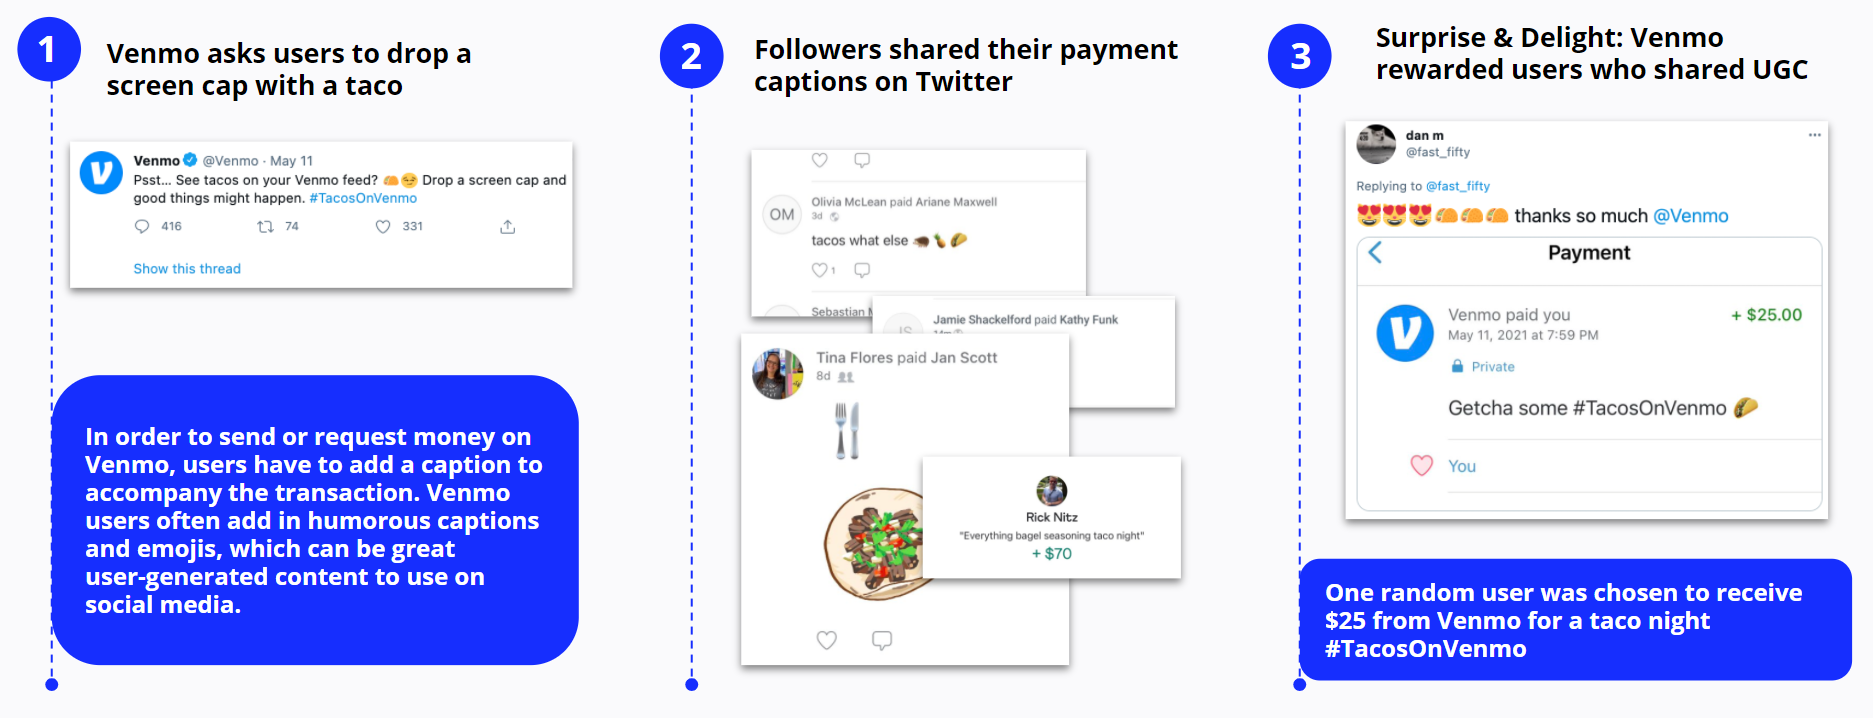 Venmo - Twitter - Payment Captions